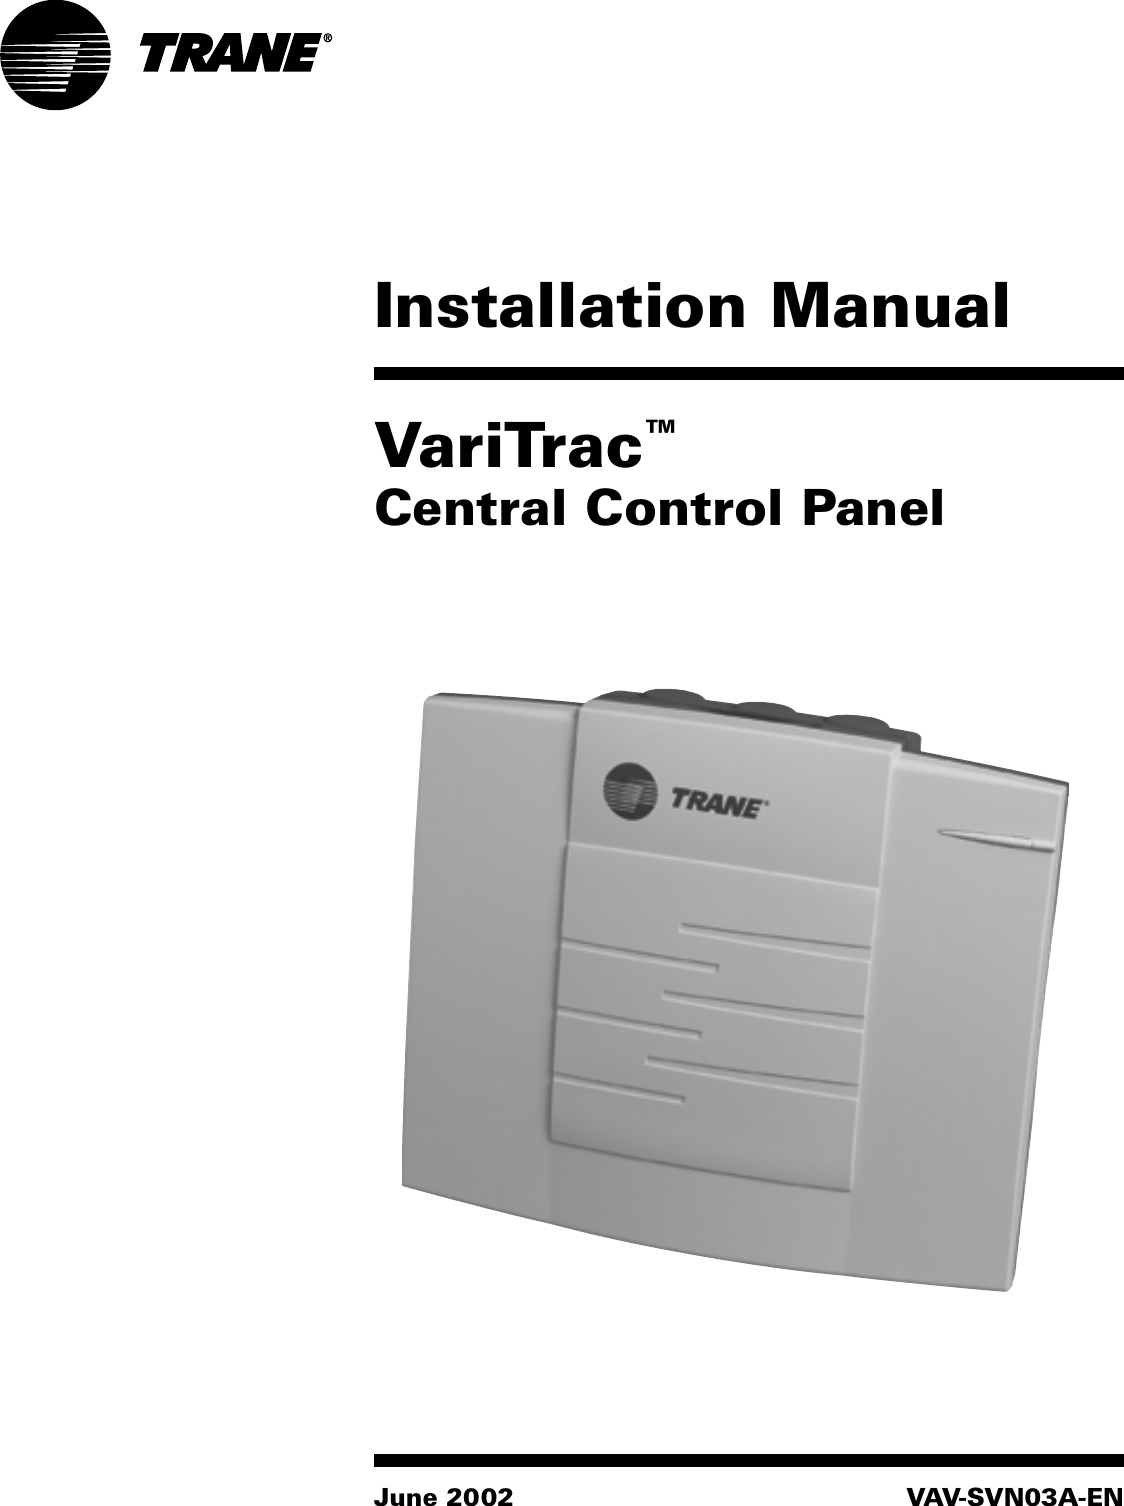 Trane Varitrac Dampers Installation And Maintenance Manual